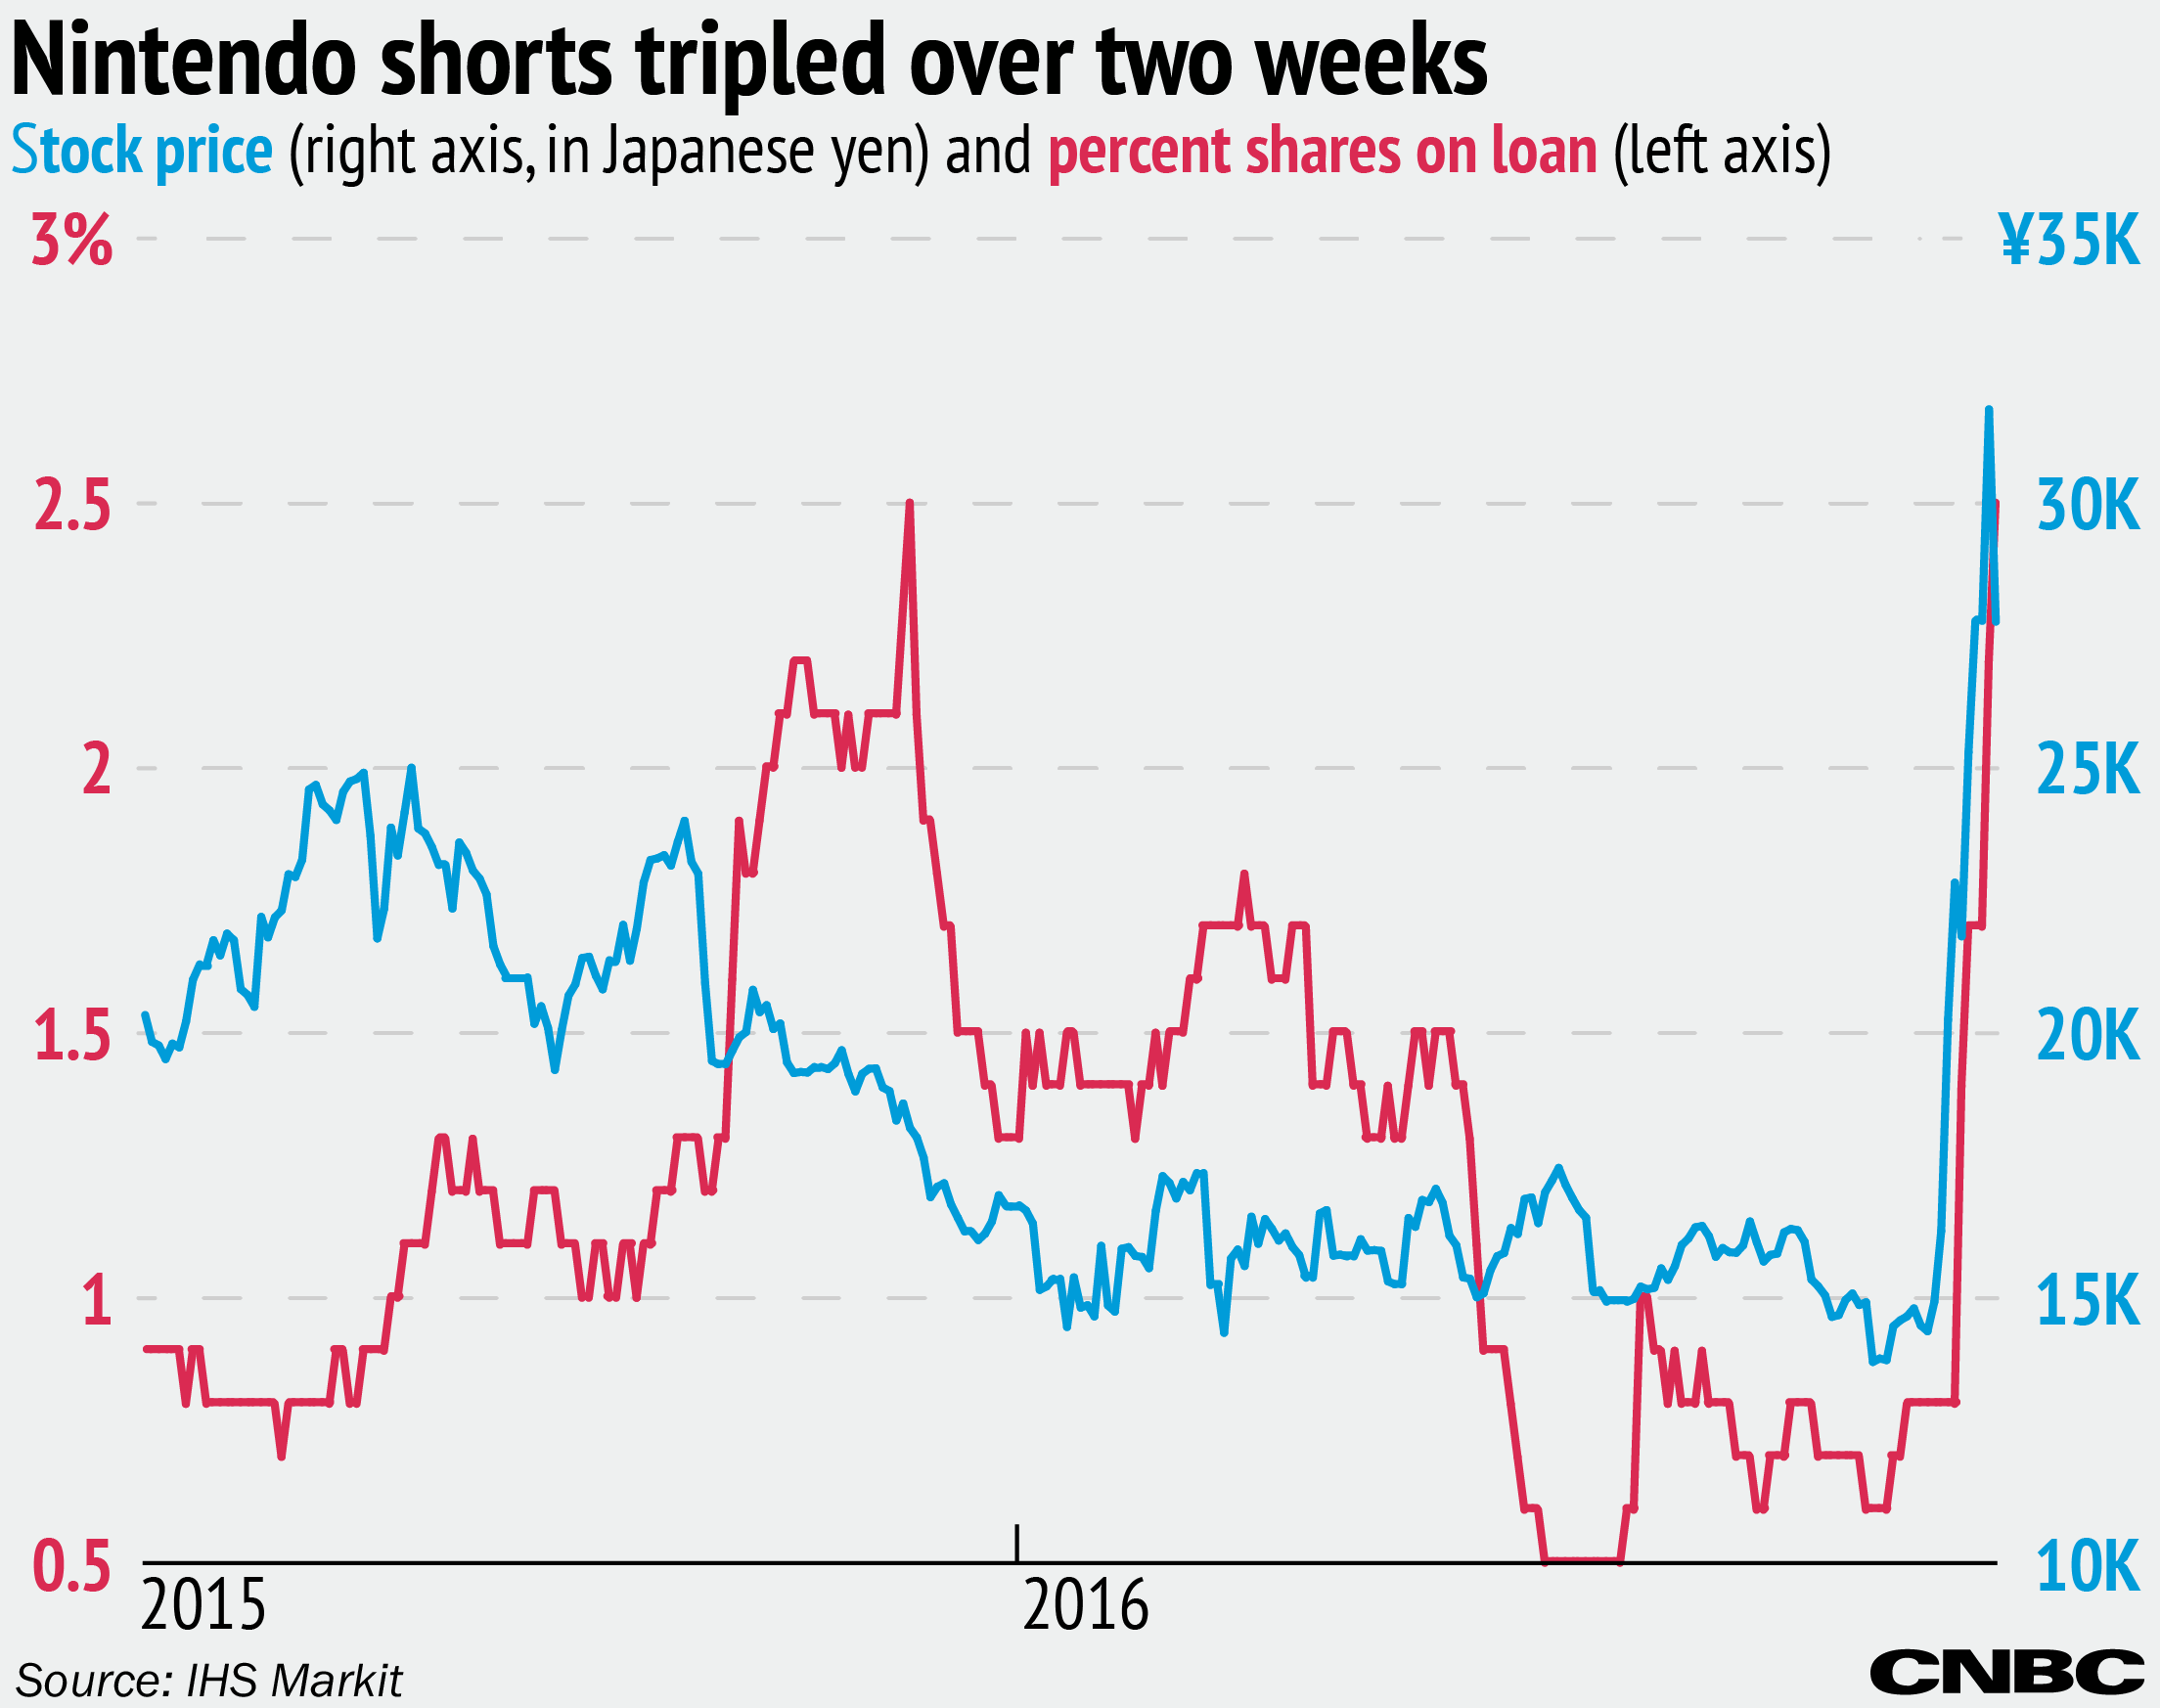 nintendo's stock sees massive jump in short interest despite